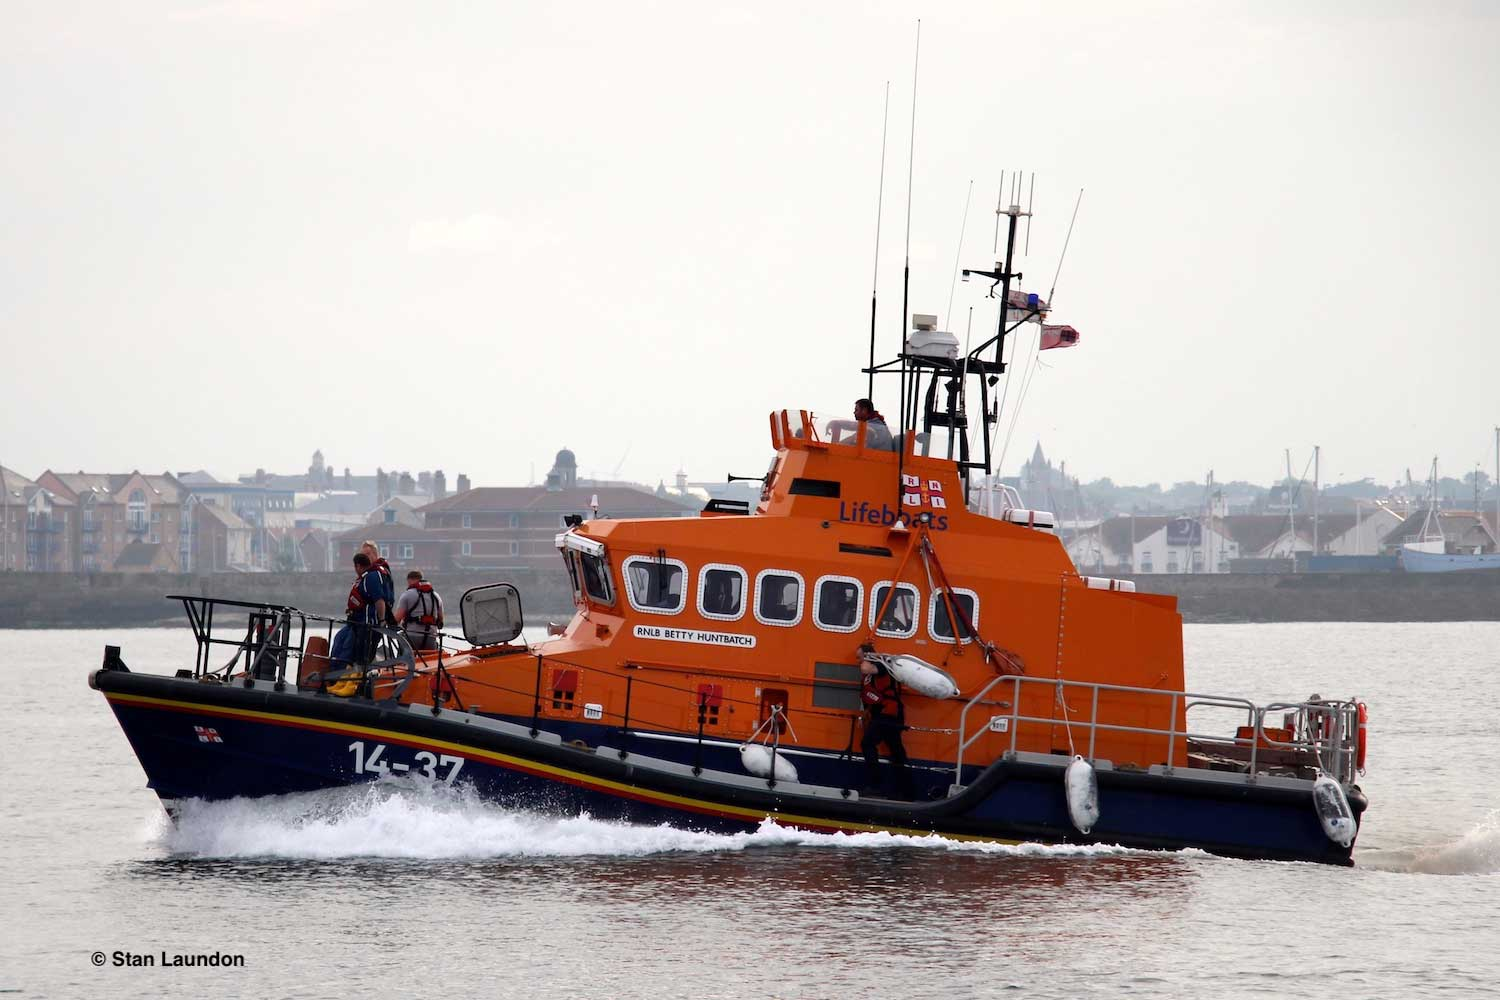 RNLB BETTY HUNTBATCH (14-37).jpg